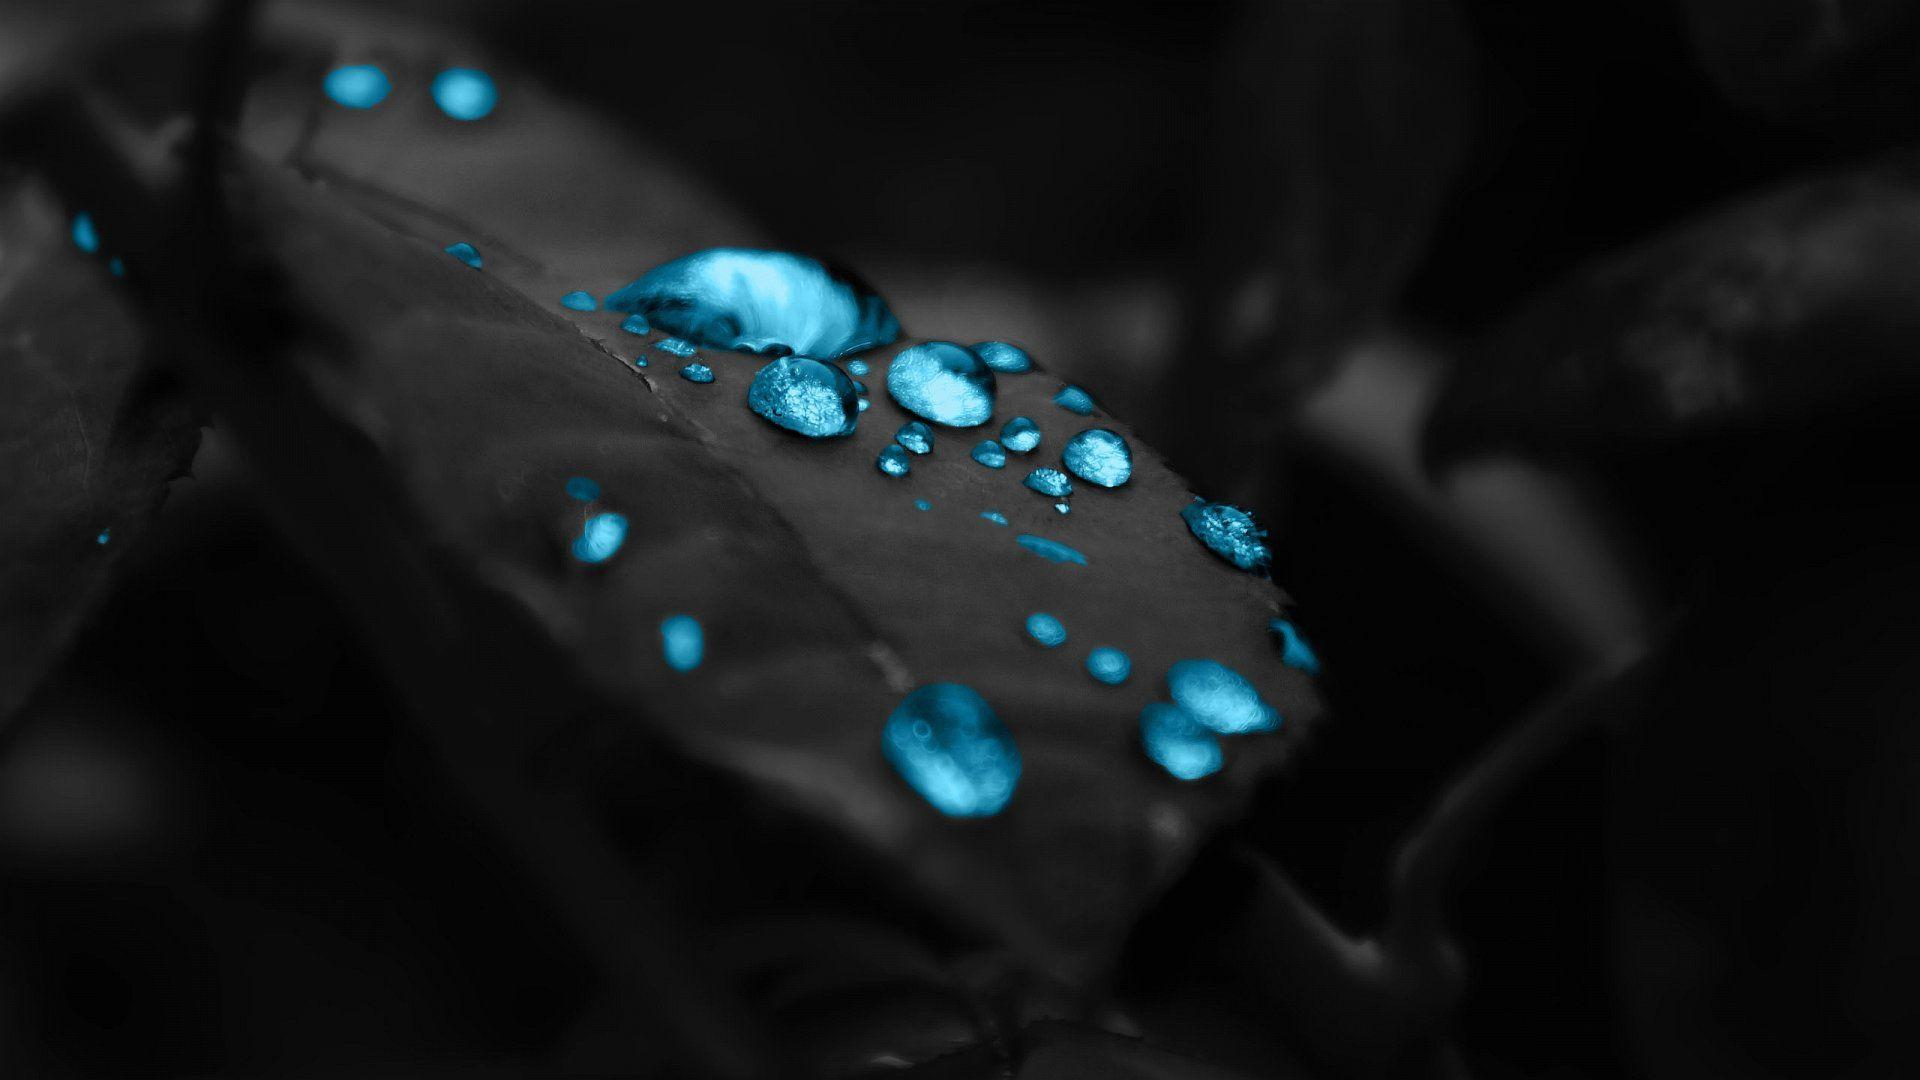 Black And Blue Wallpapers Hd Wallpaper Cave